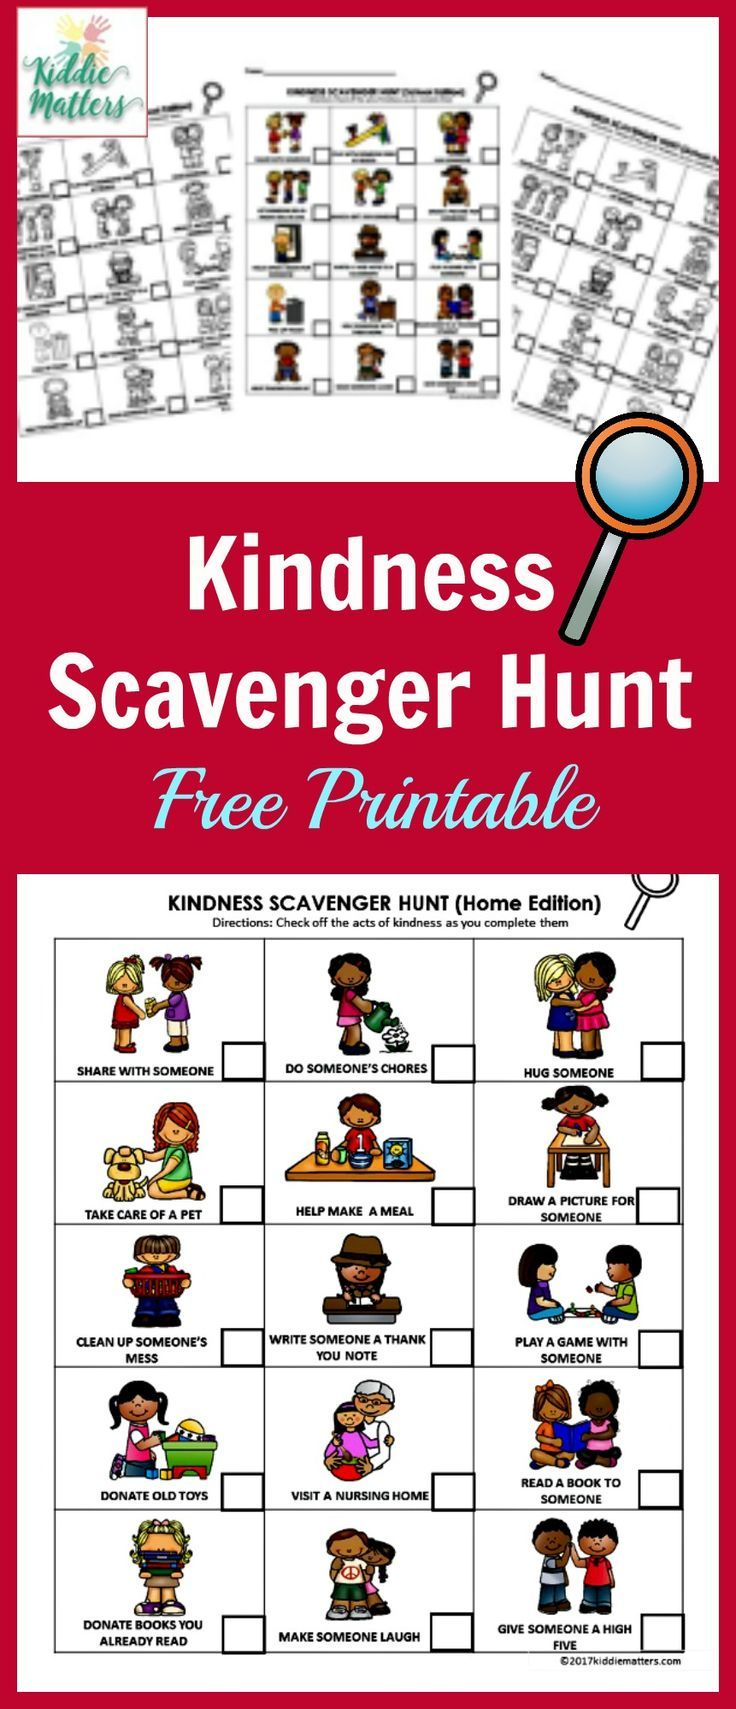 Teaching kids how to be kind is crucial for social and emotional development. These kindness activities are perfect for kindness week and friendship week.